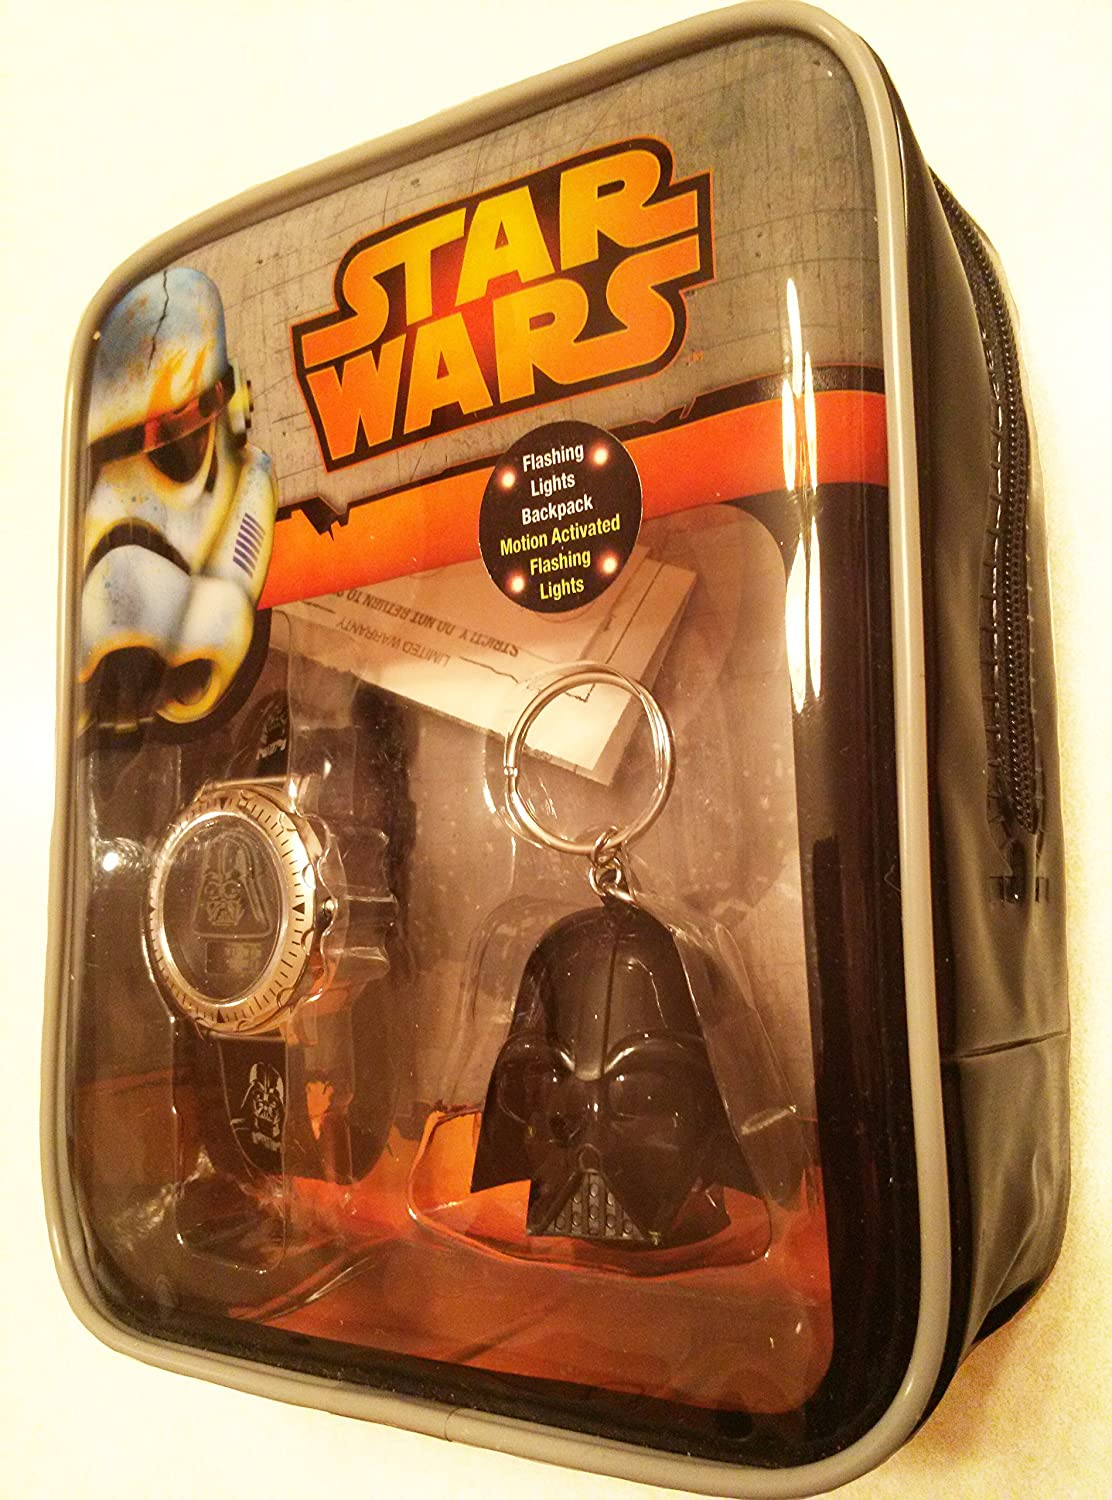 42946b8174e3 Amazon.com  Star Wars Flashing Lights Mini Backpack (Motion Activated  Flashing Lights) Star Wars Watch and Keychain Included!  Toys   Games